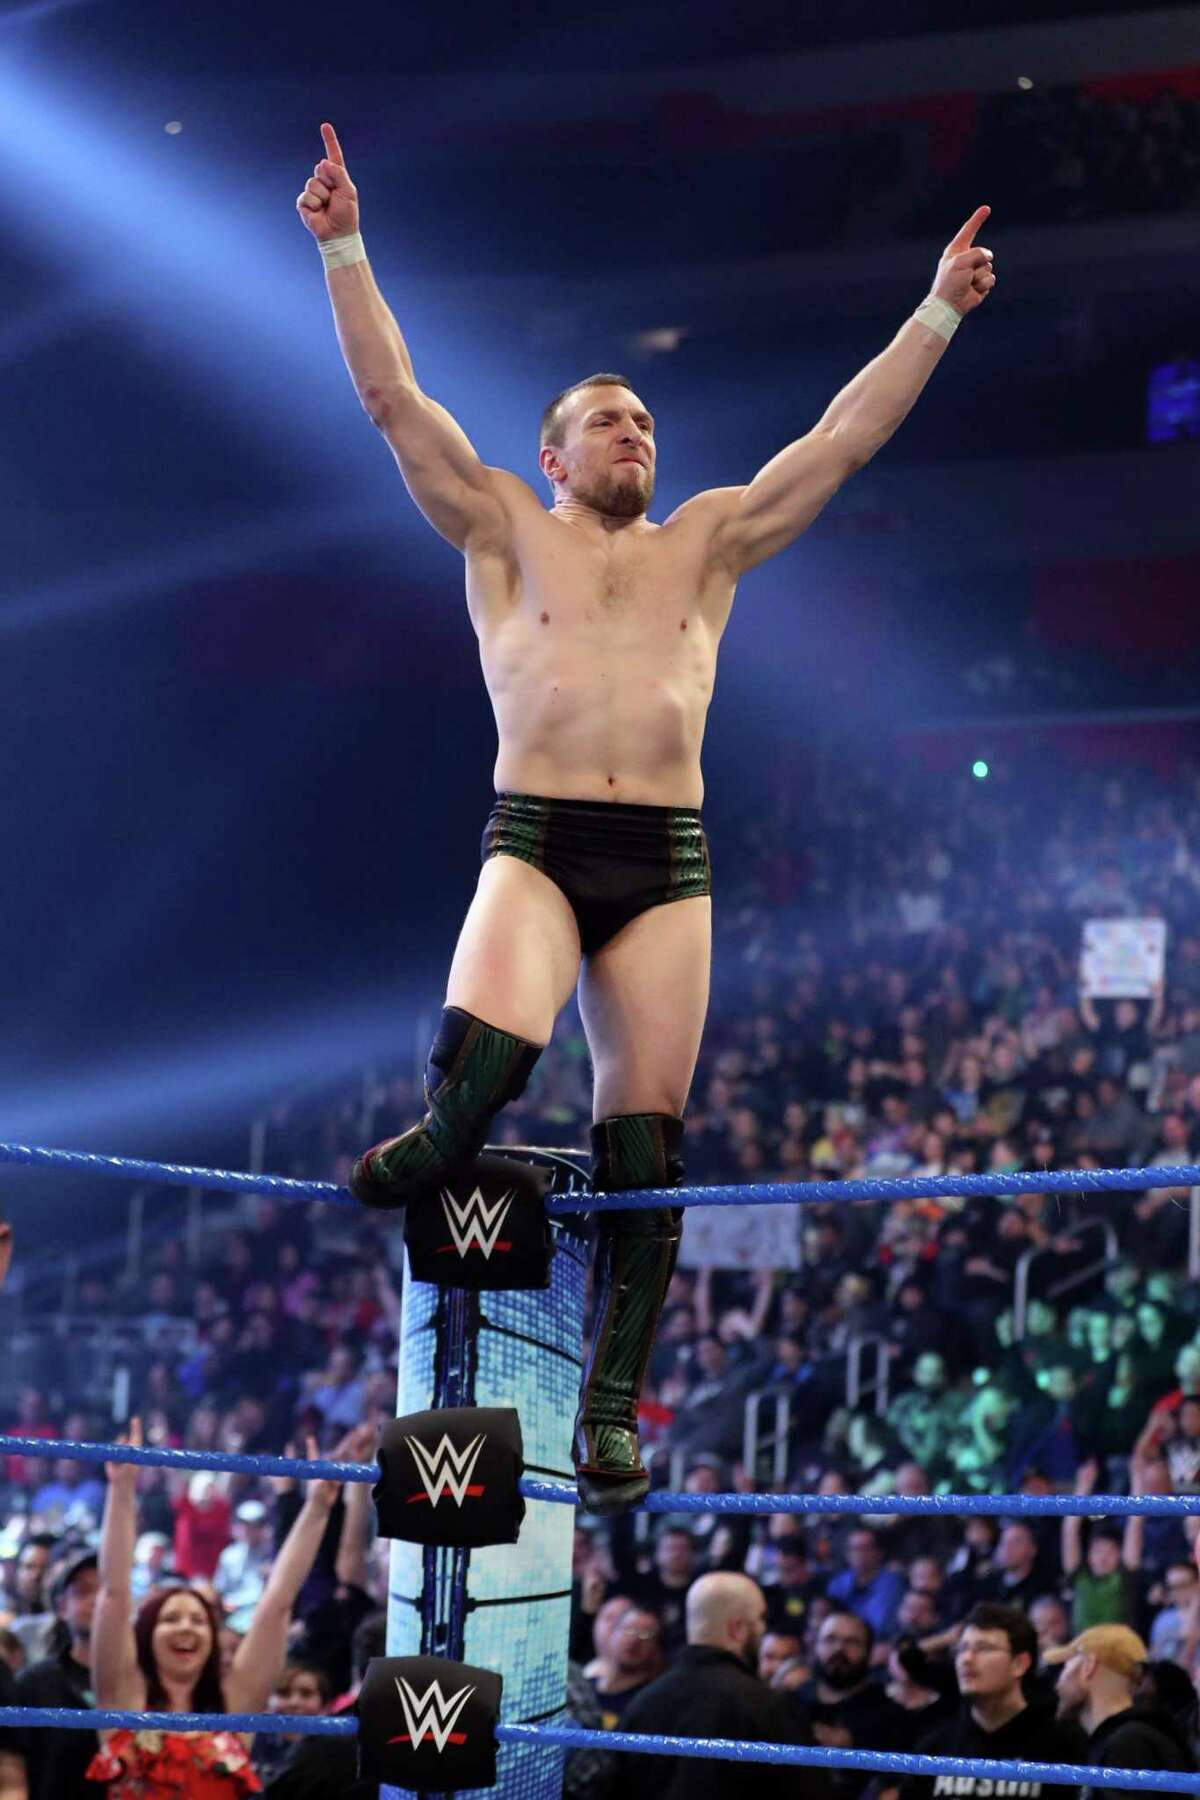 WWE Superstar Daniel Bryan is looking to win the WWE Universal Championship when he faces